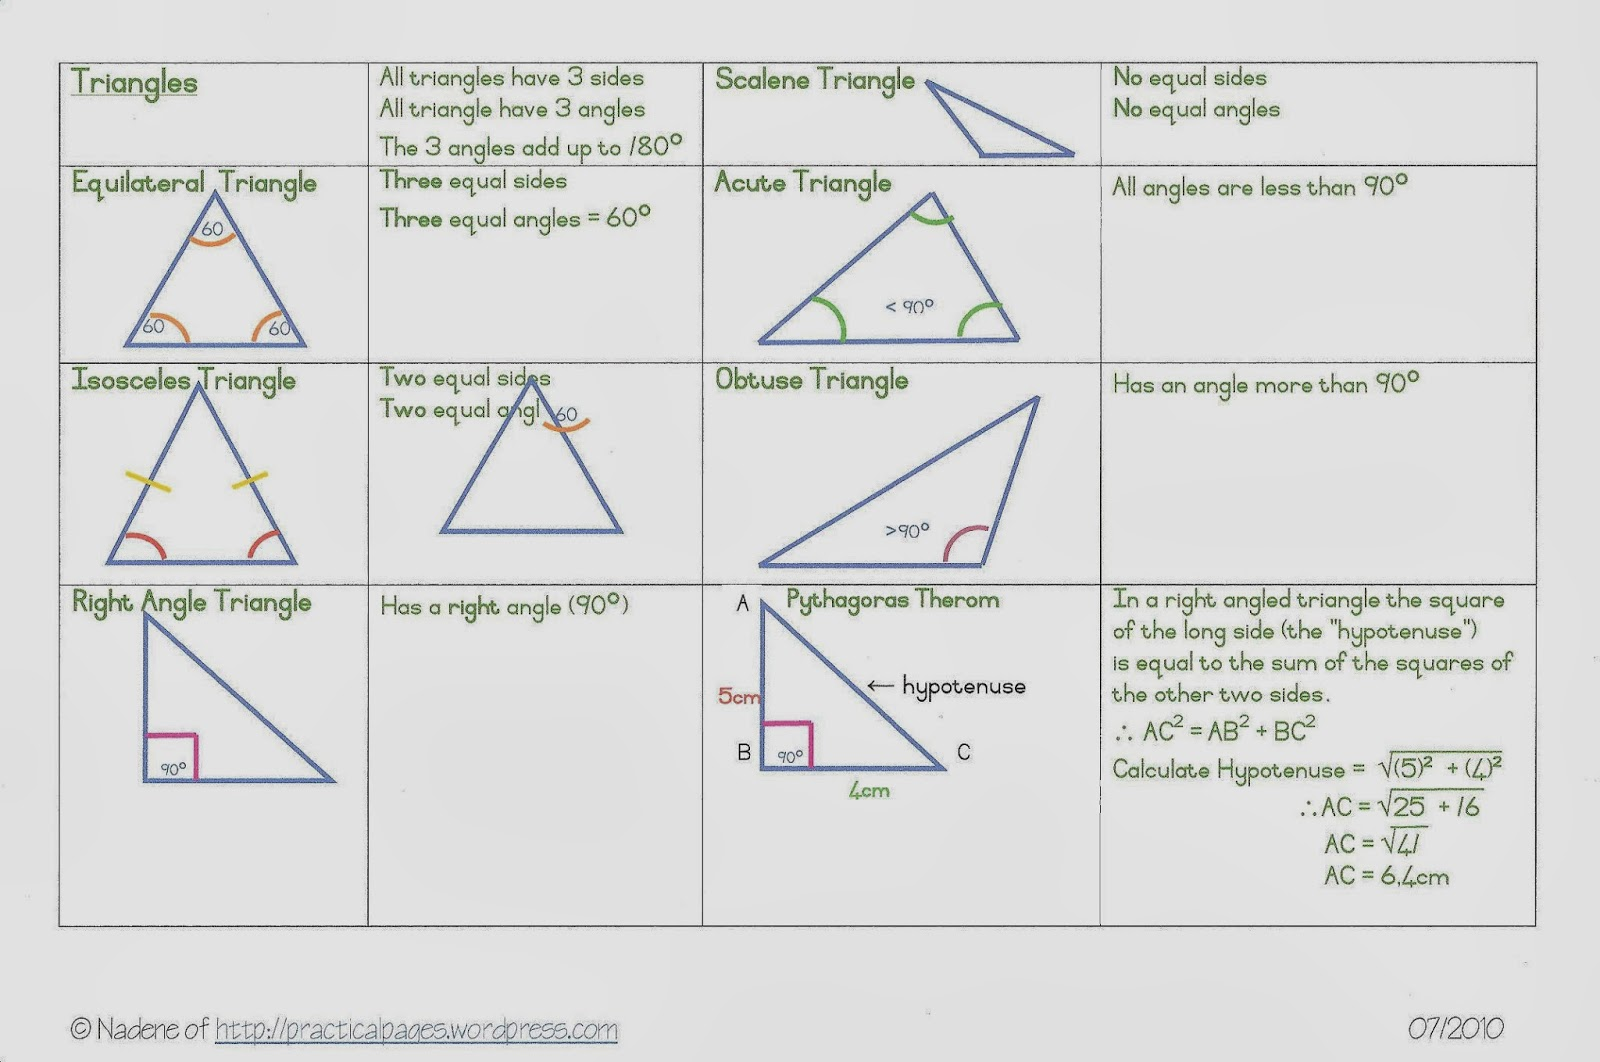 Art S´Arenal Blog: TRIANGLE TYPES - photo#19